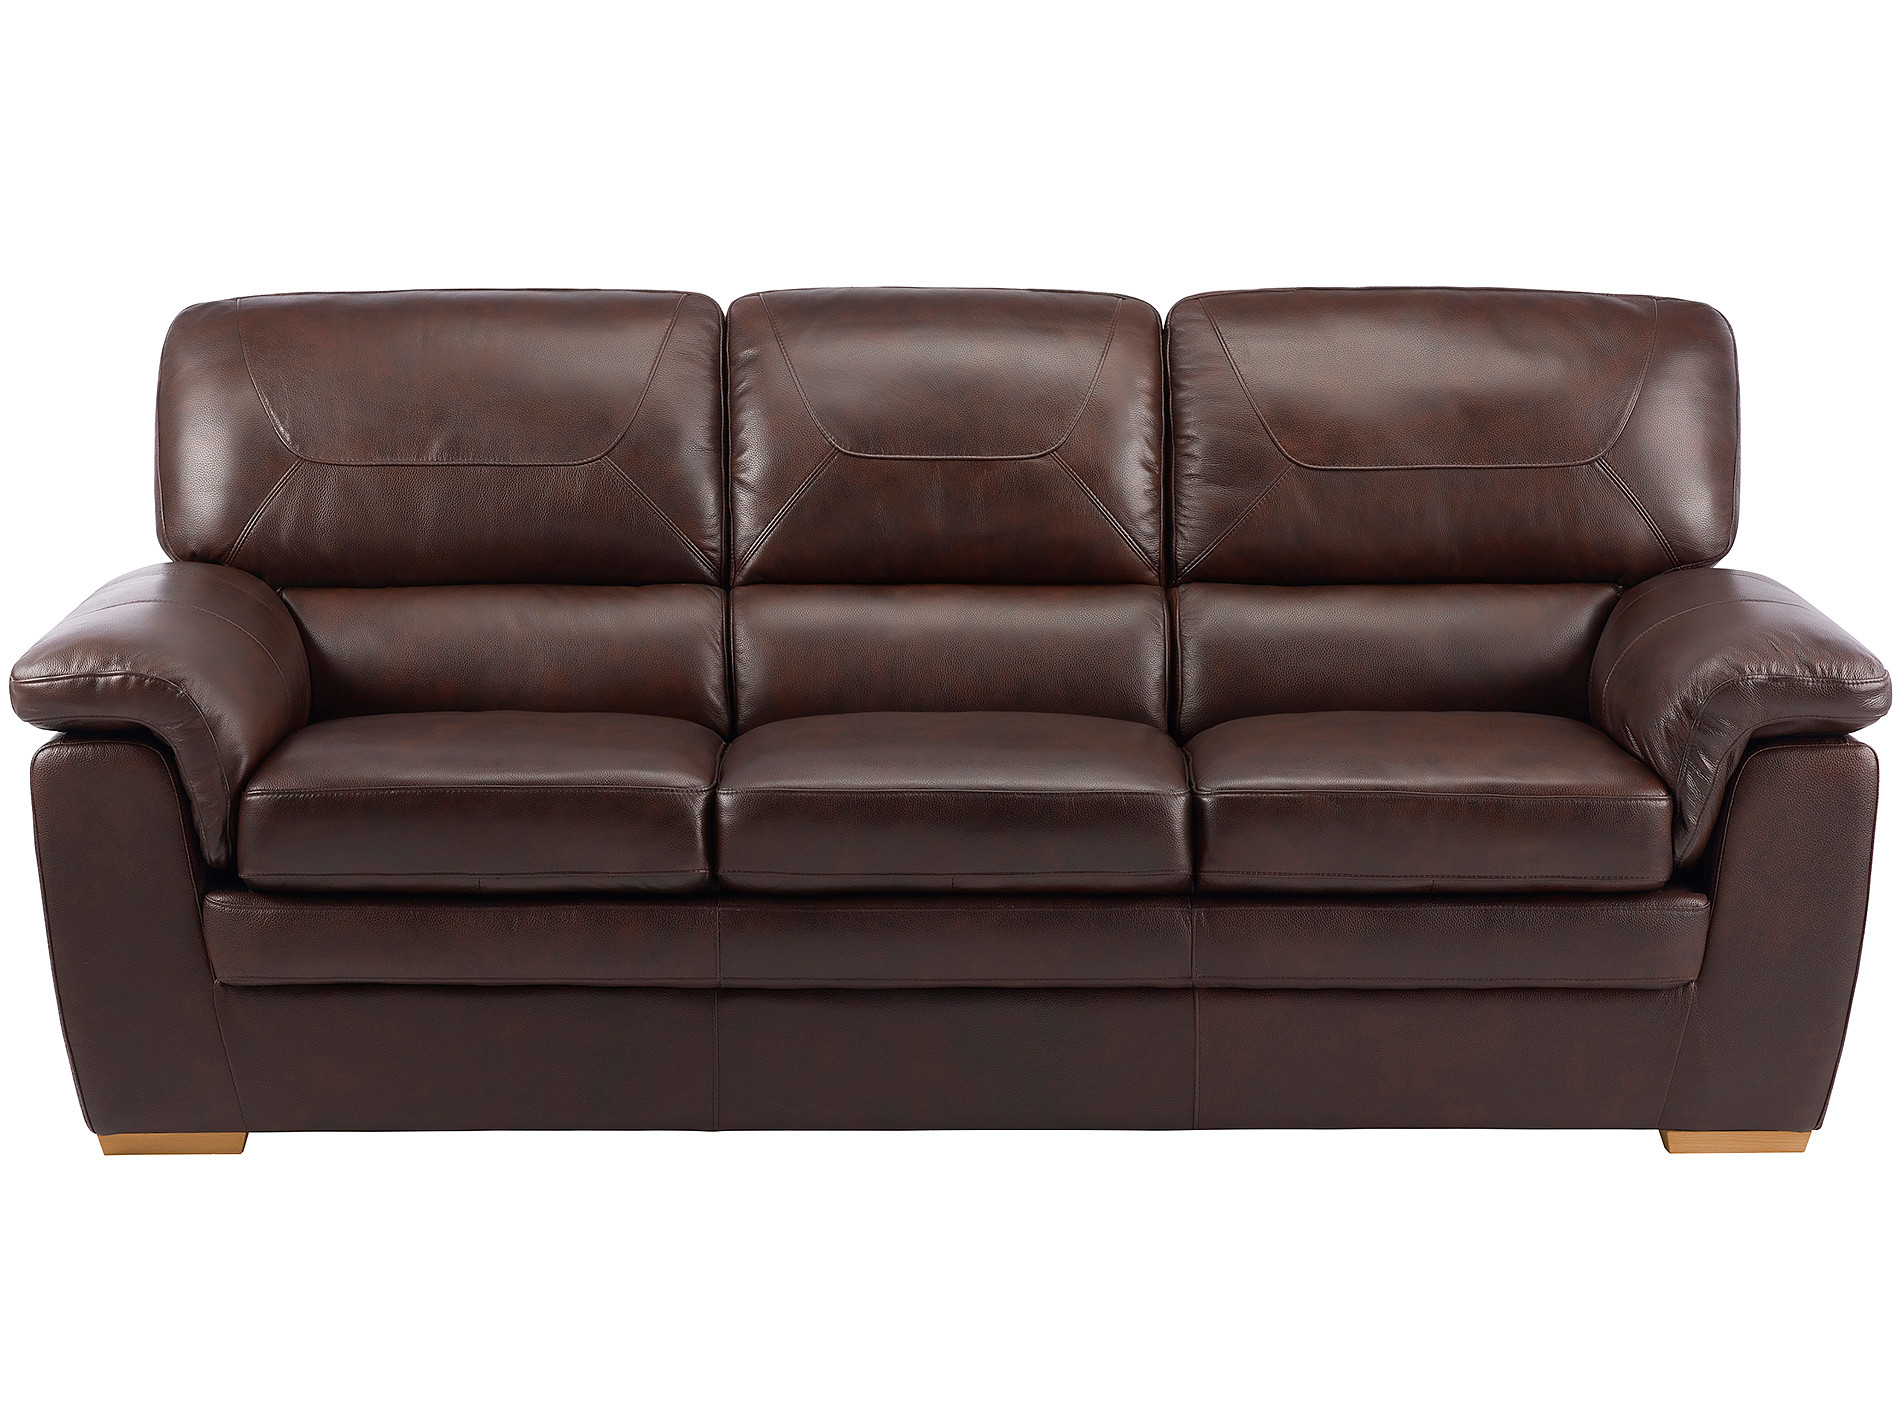 big leather sofa leg supplier in malaysia sofastore quality sofas at incredible prices